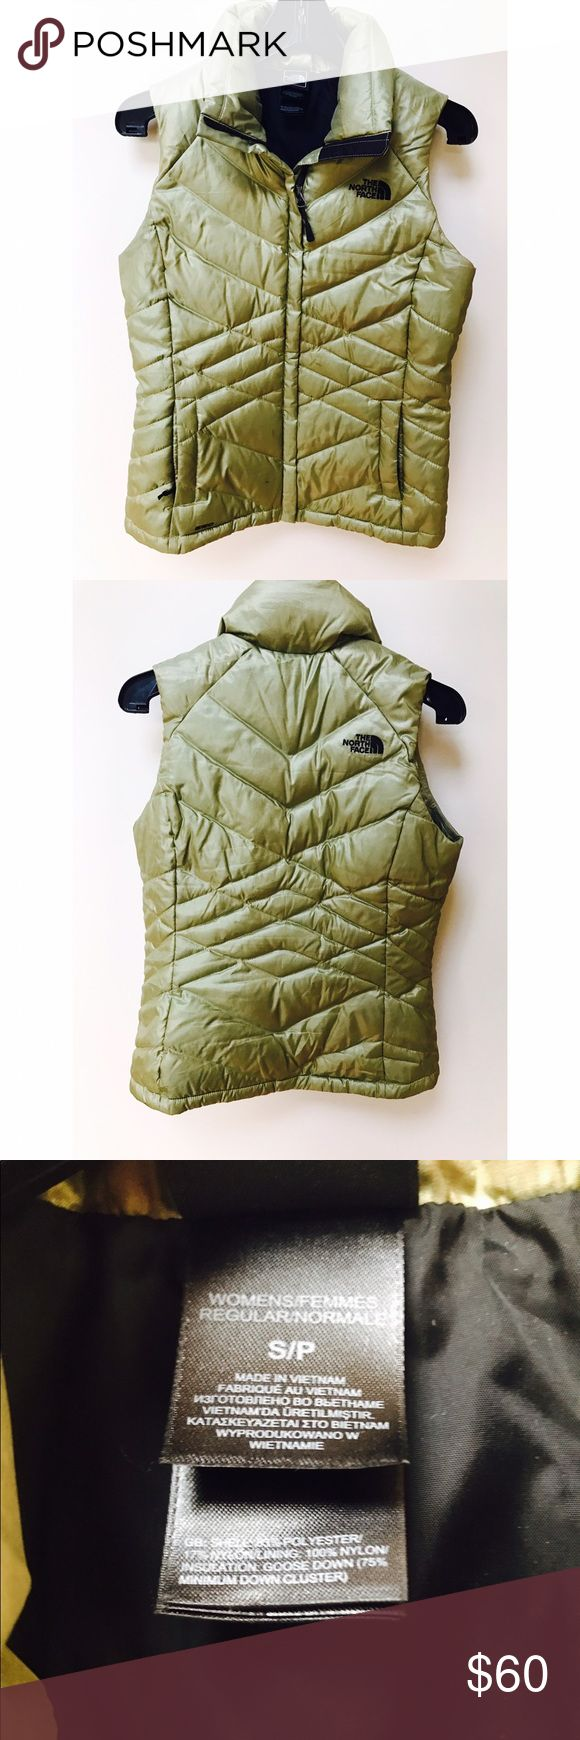 Gold Women's North Face Vest (size small) Great condition lightly used women's vest with goose down fill (very warm for winter!) The North Face Jackets & Coats Vests